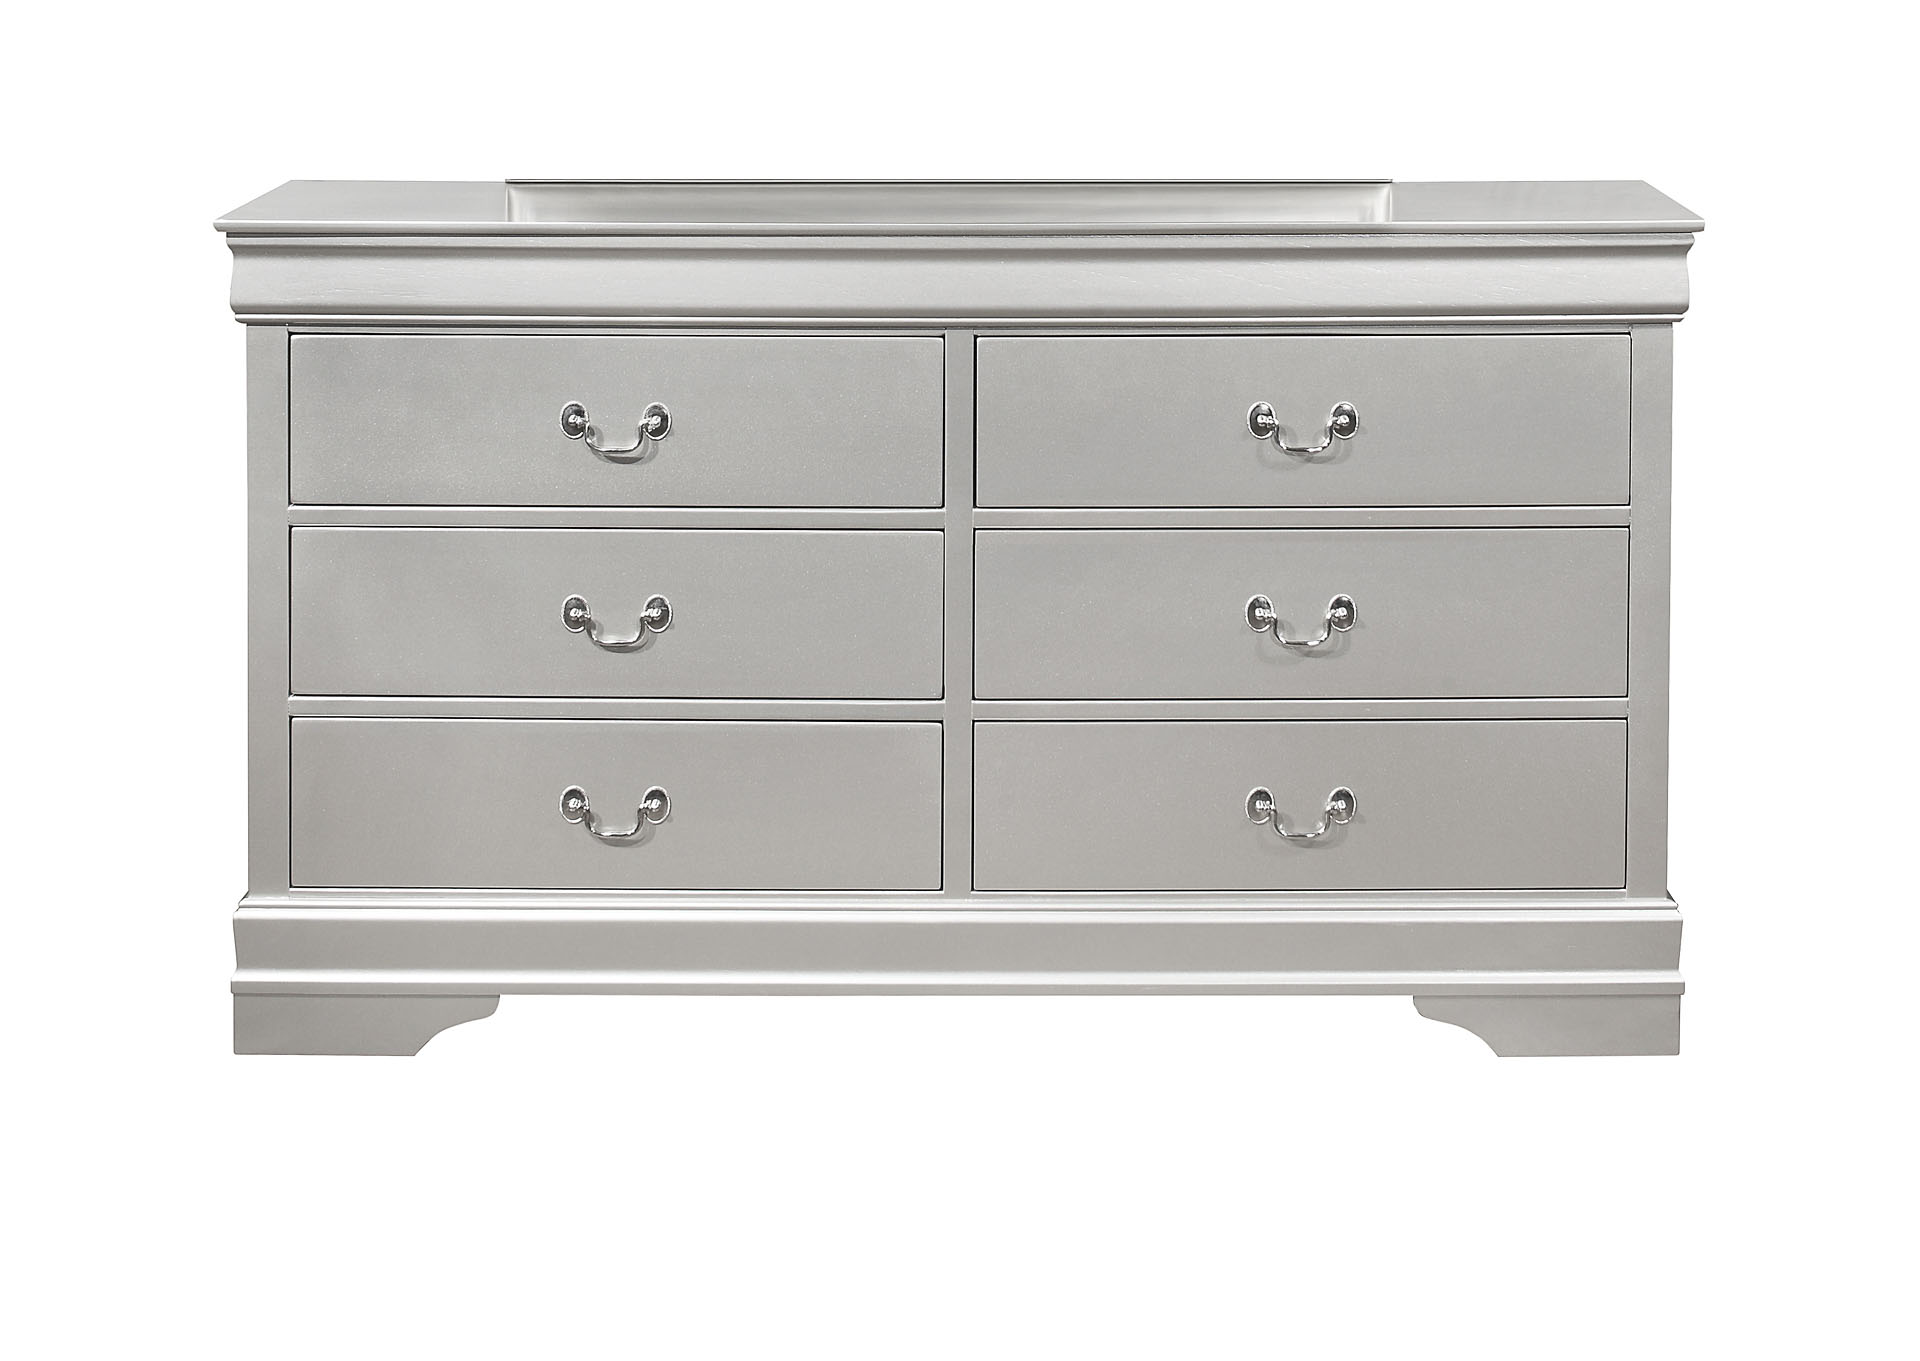 Marley Silver Dresser,Global Furniture USA